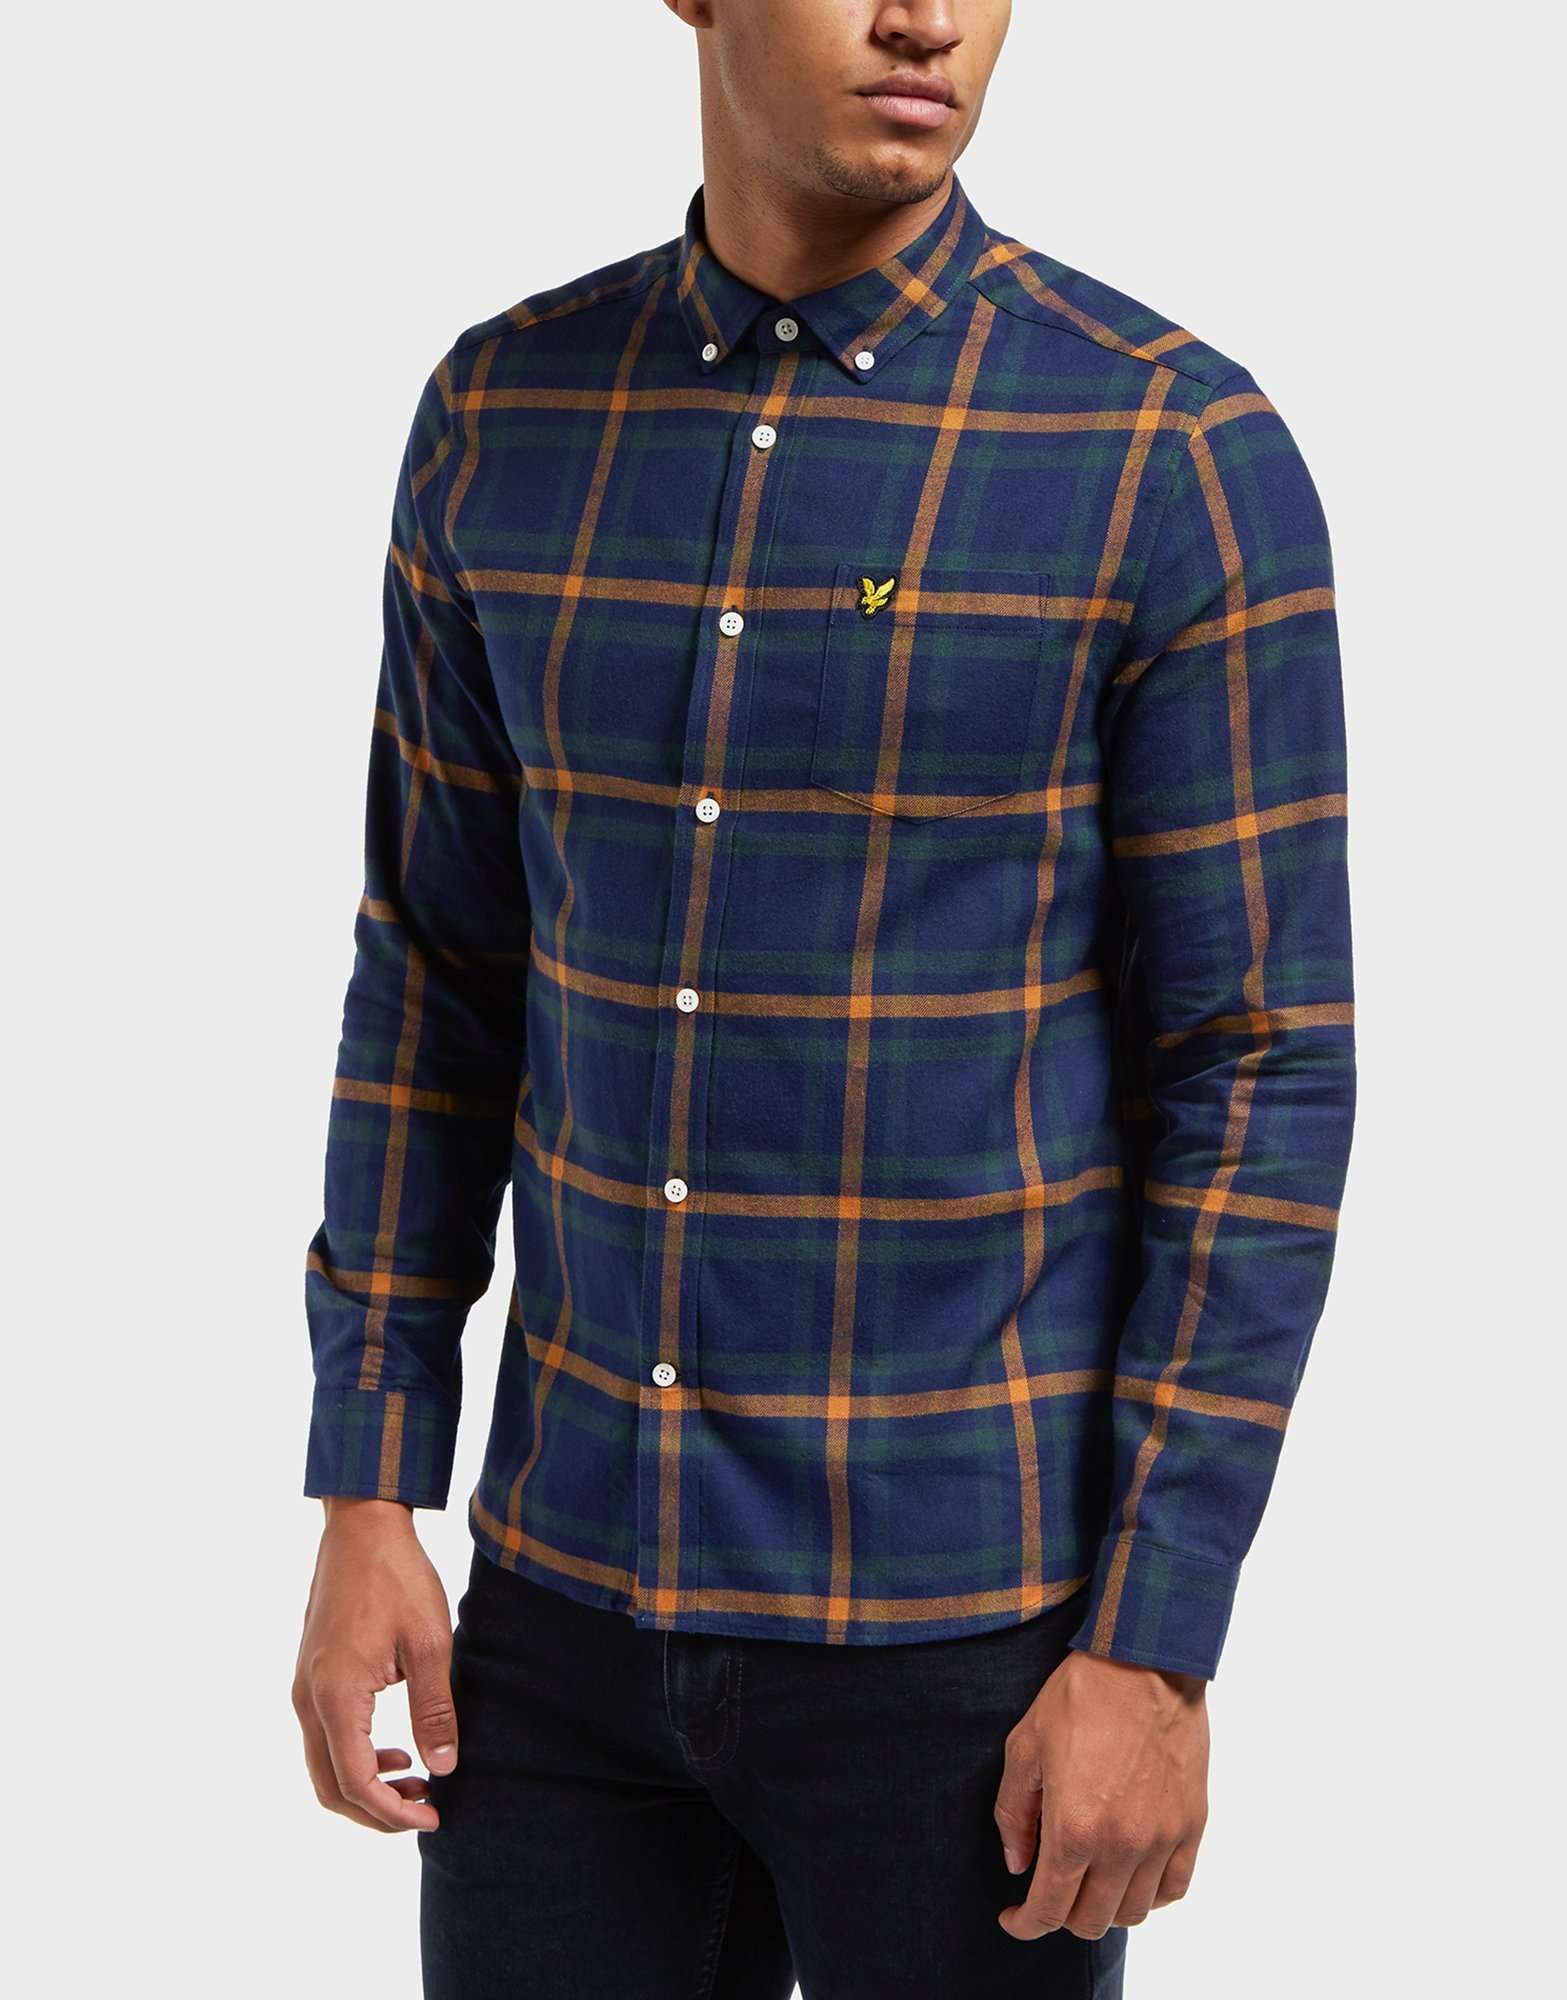 Lyle & Scott Checked Long Sleeve Shirt - Online Exclusive